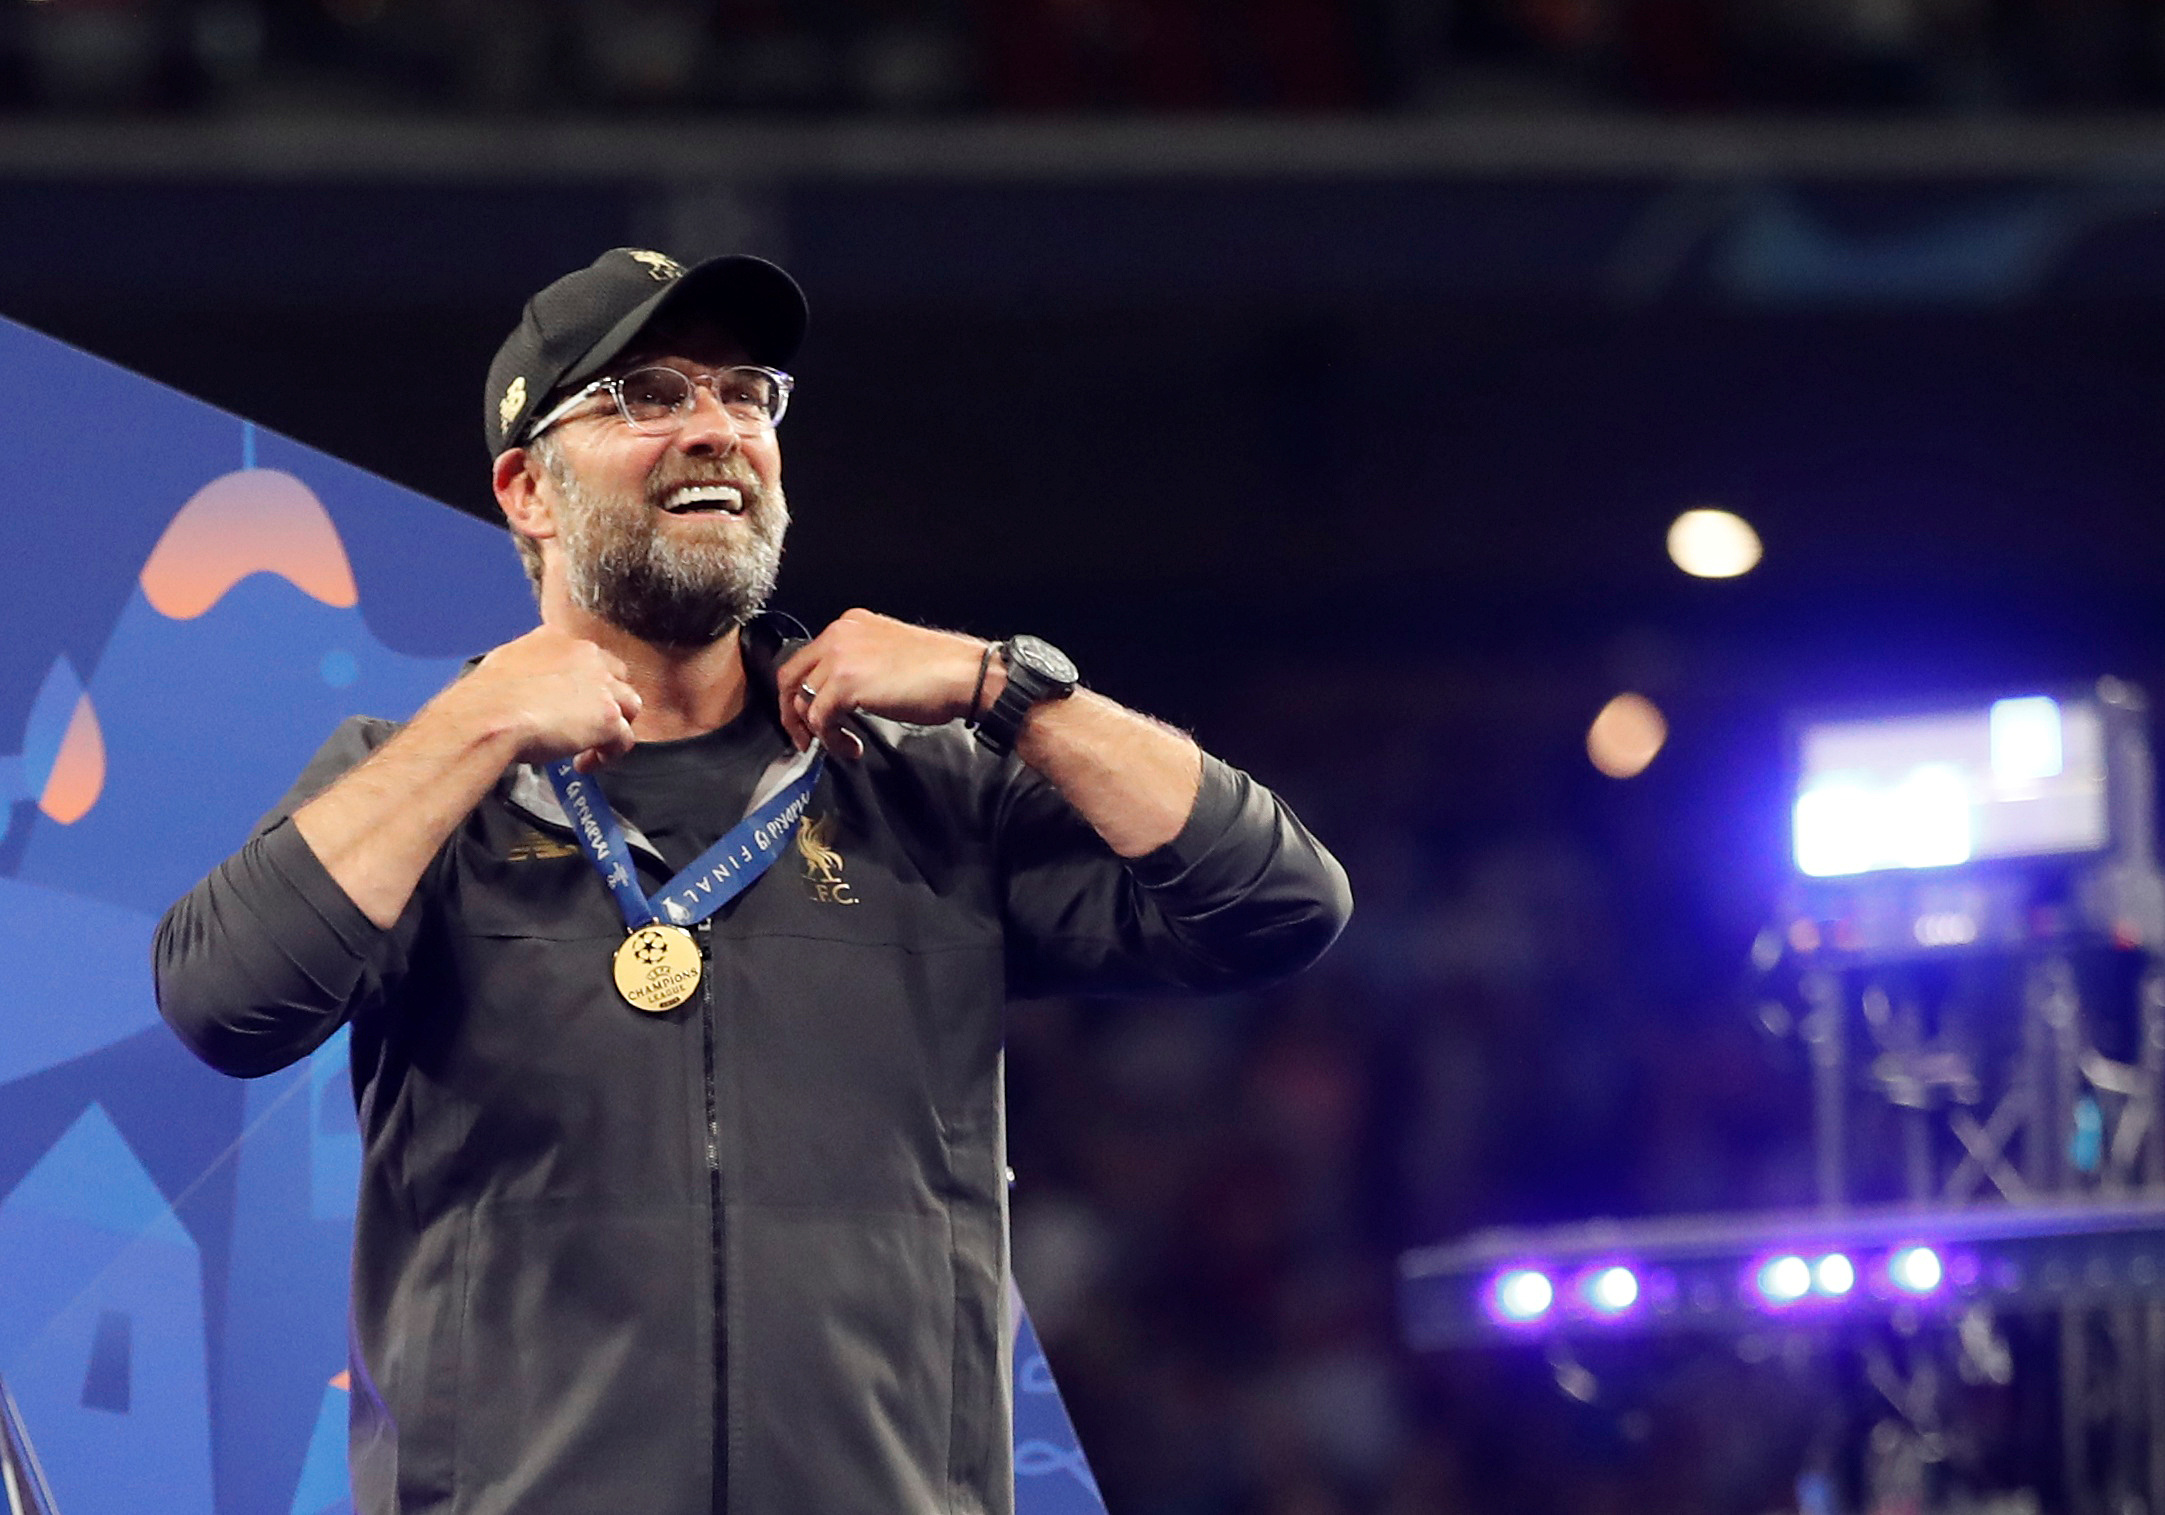 Champions League glory impossible without Klopp, says